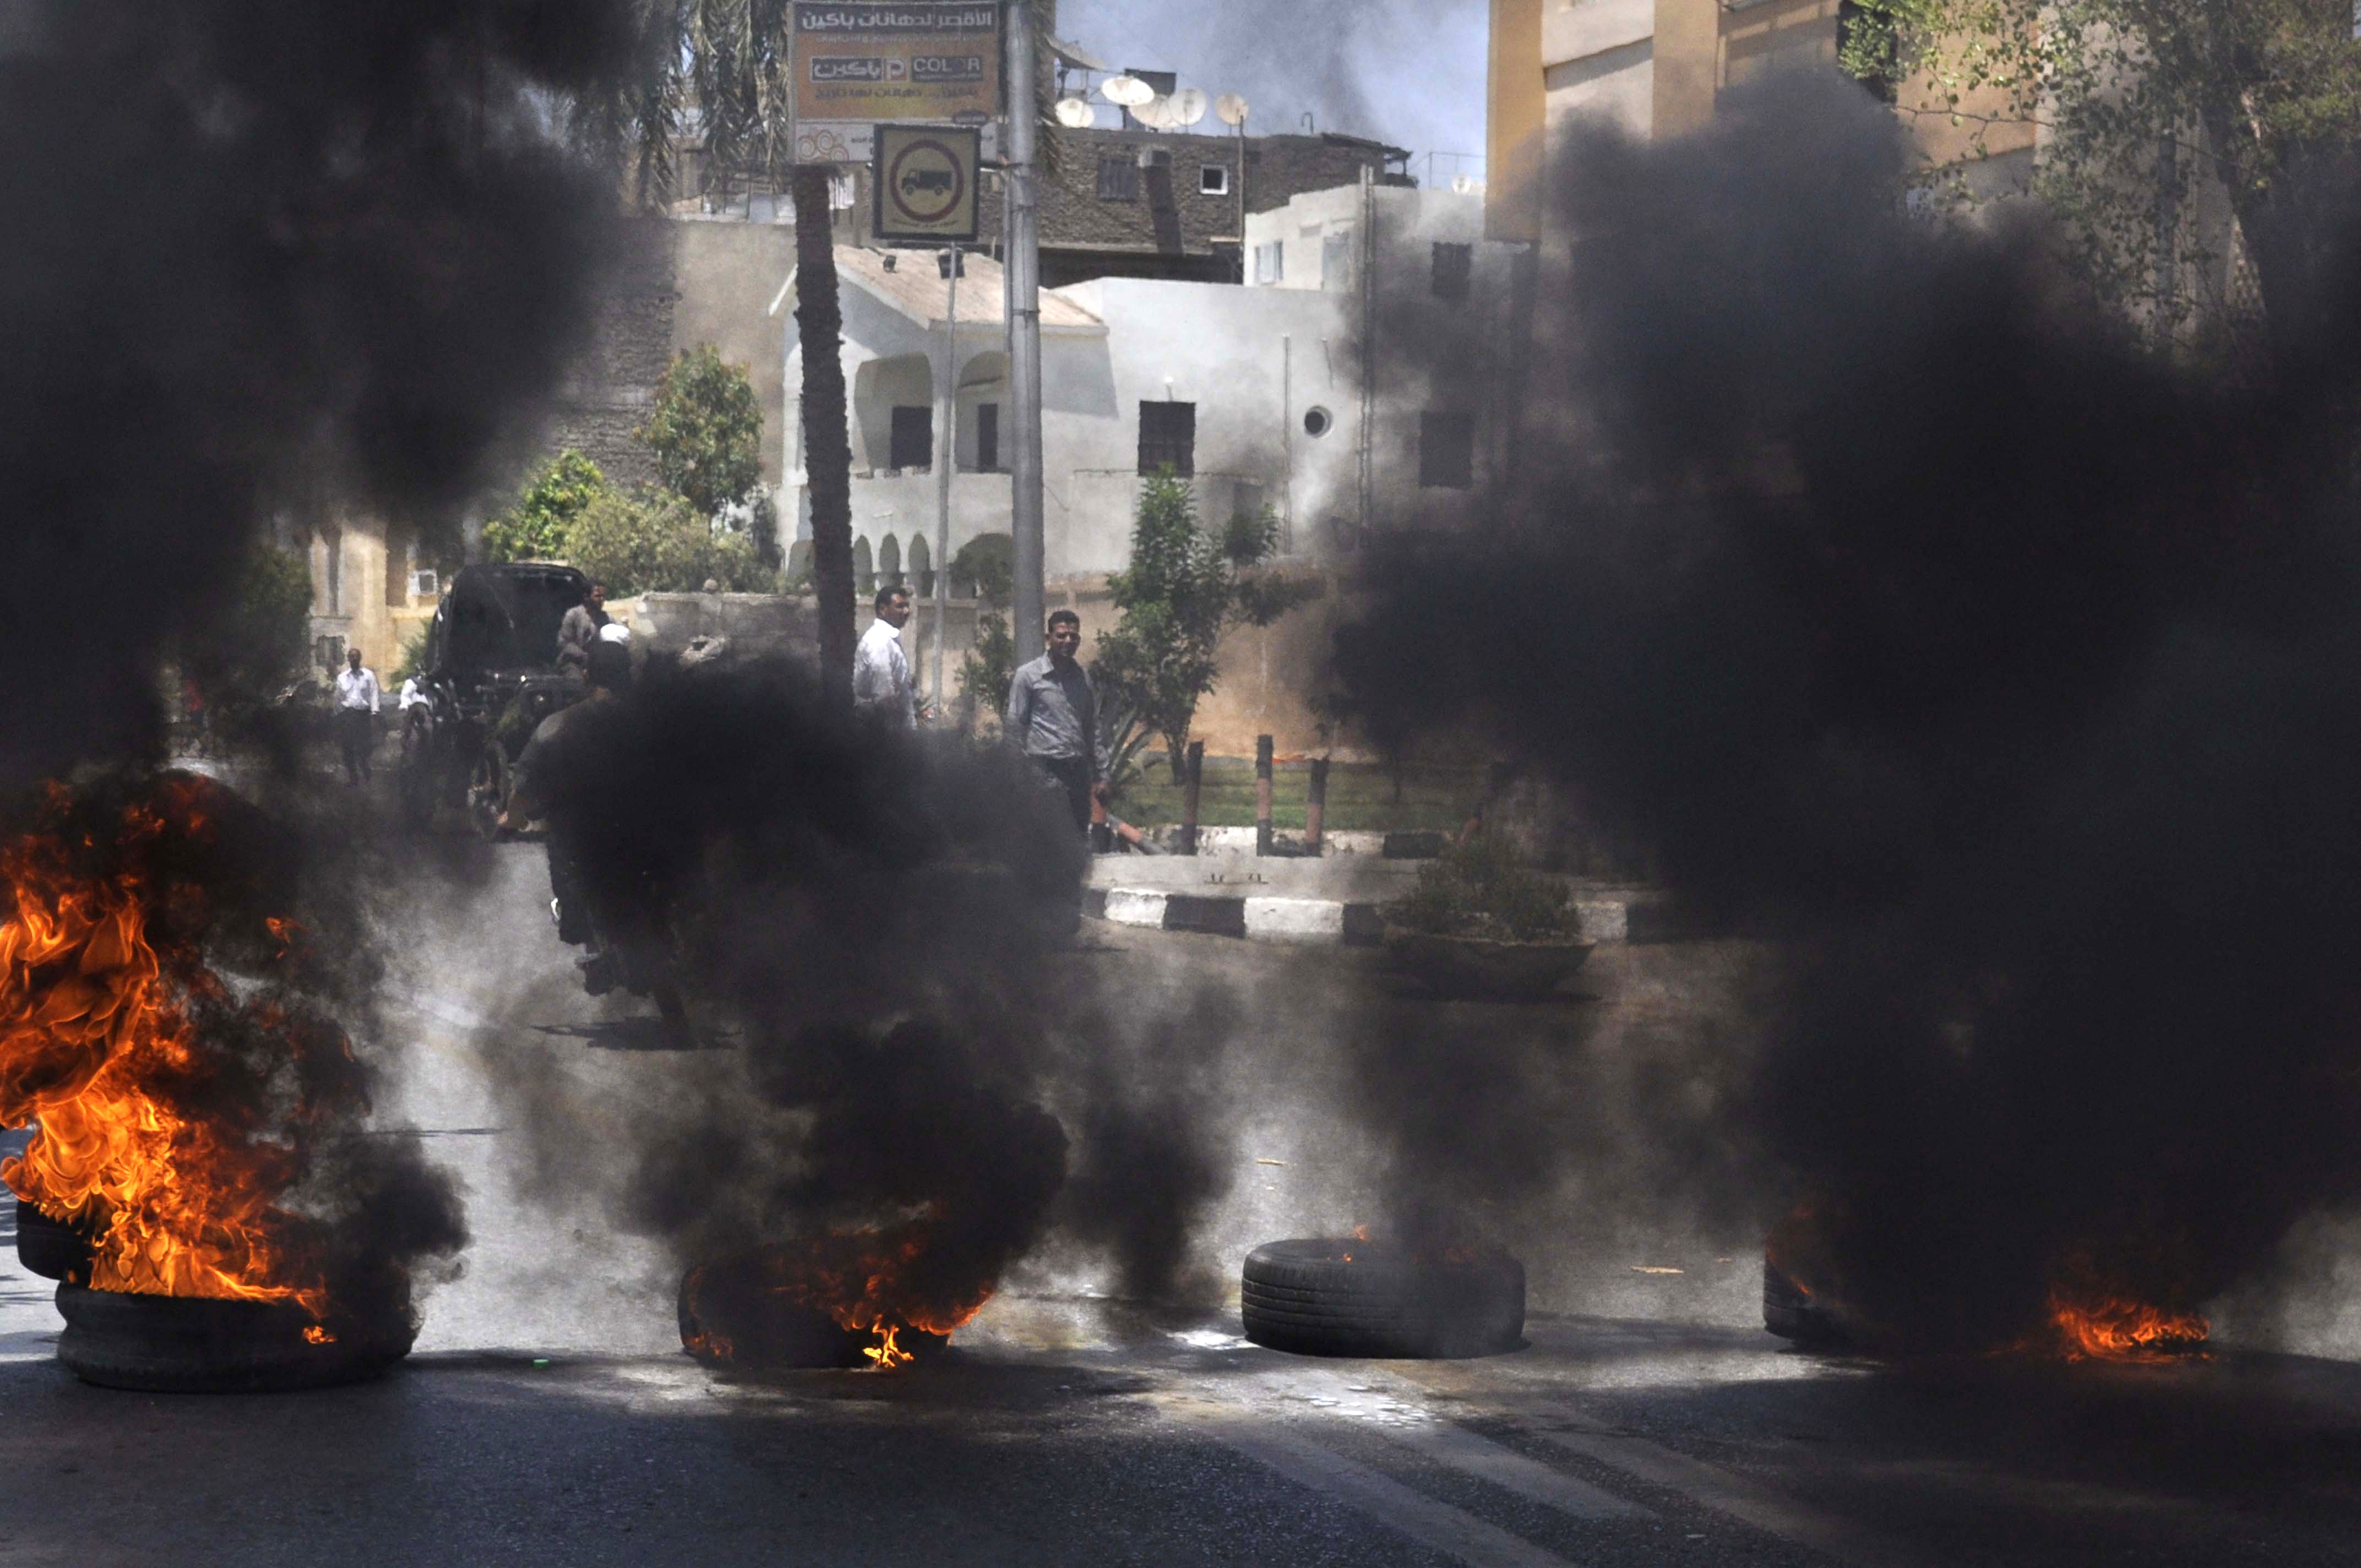 Black smoke rises from tires set on fire by demonstrators outside the Luxor town house protesting against the appointment of Adel al-Khayat, a member of the political arm of ex-Islamic militant group Gamaa Islamiya, as new governor on June 19, 2013 in Luxor, Egypt (AFP Photo)